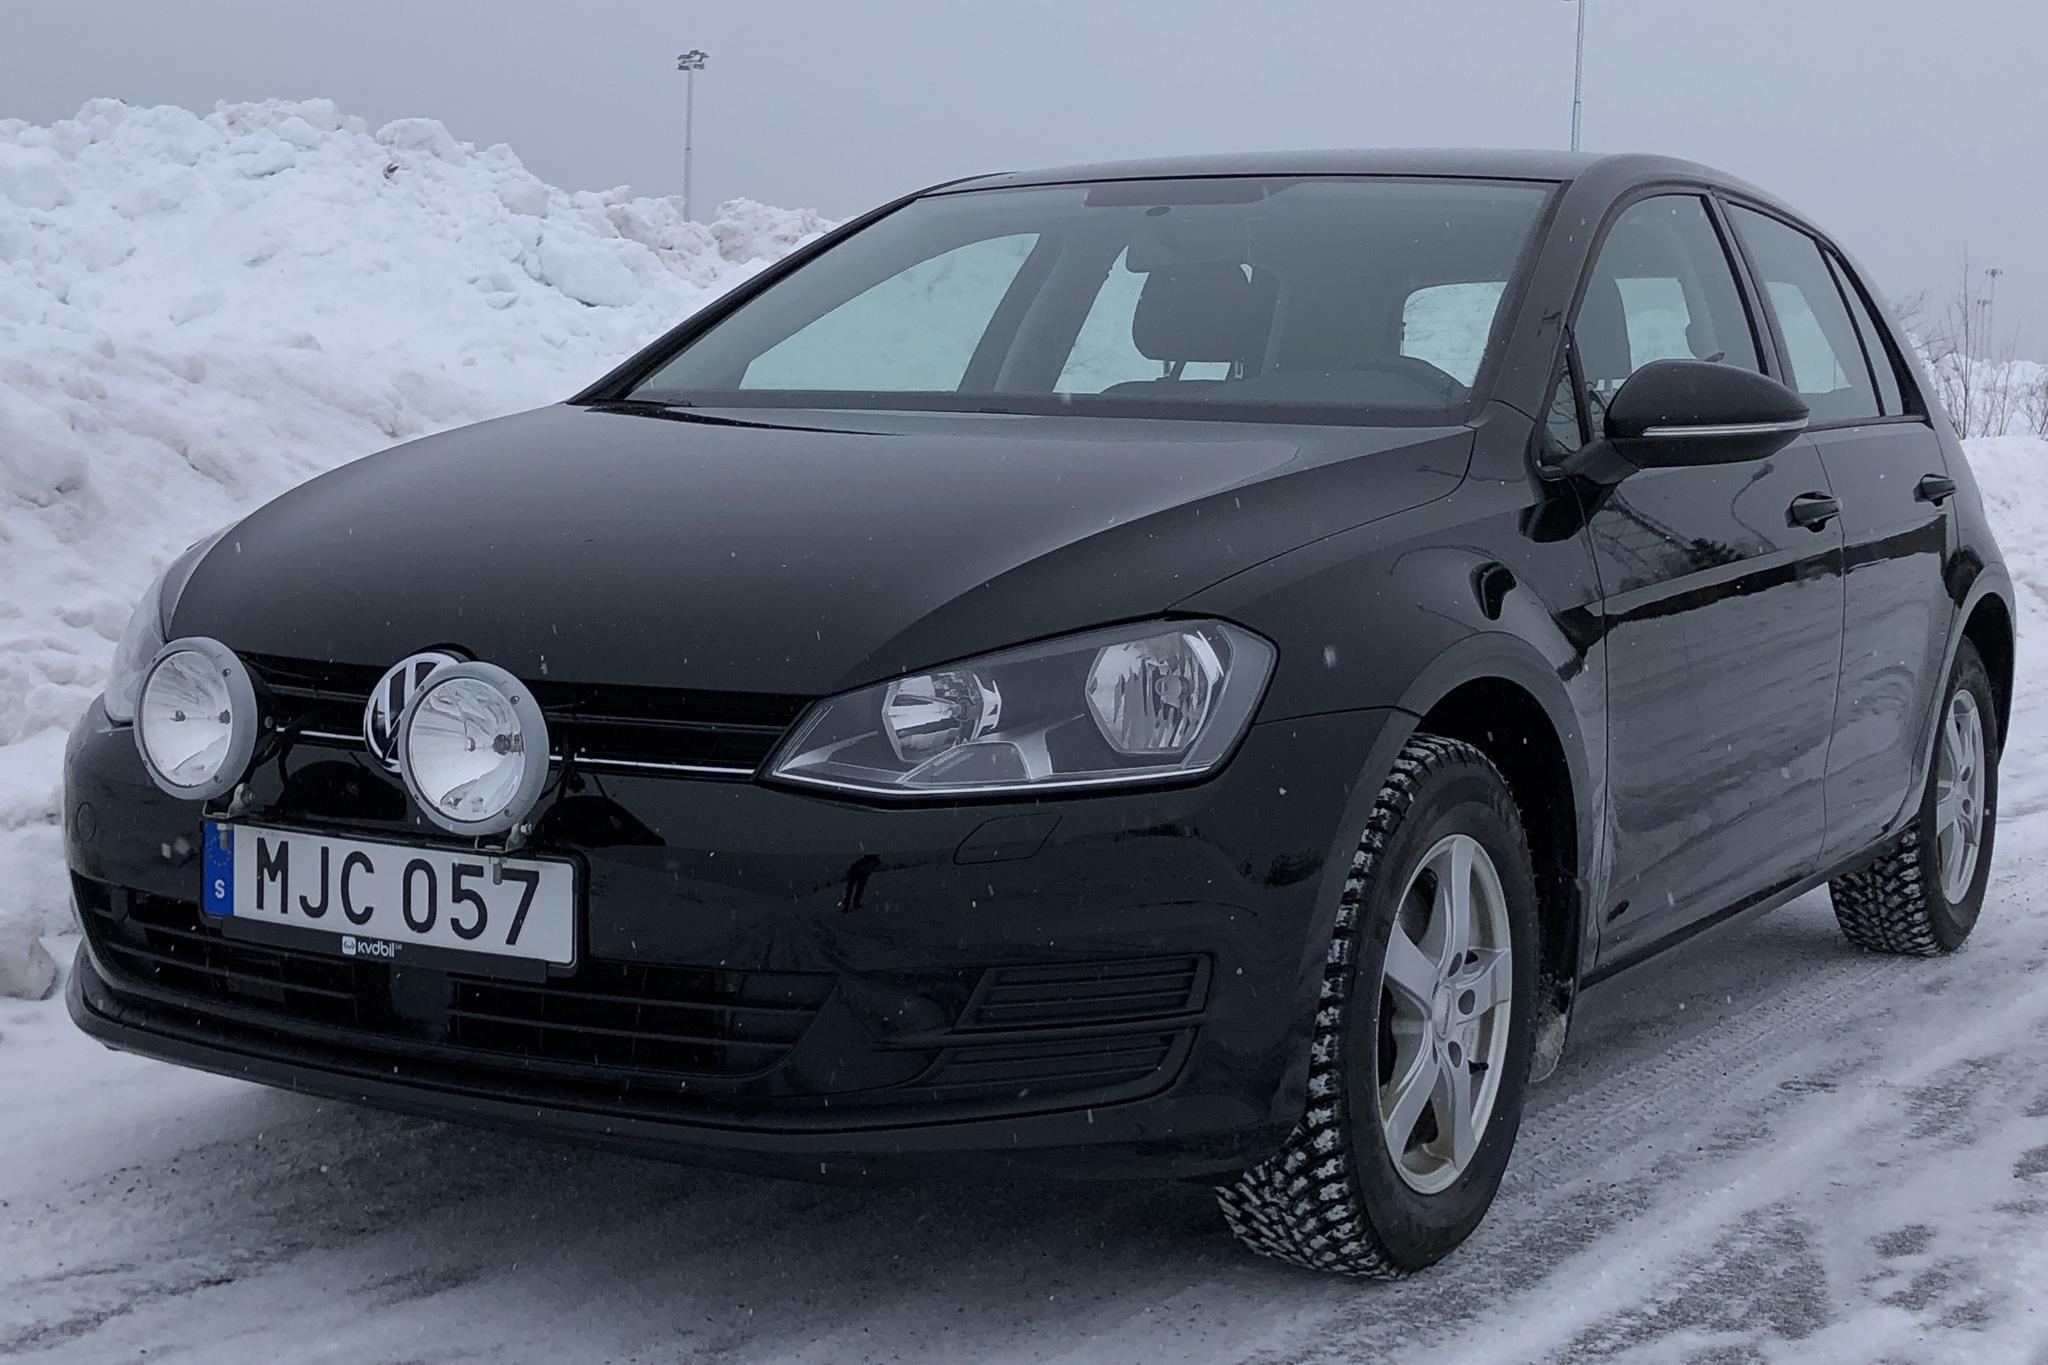 VW Golf VII 1.6 TDI BlueMotion Technology 5dr 4Motion (105hk) - 9 191 mil - Manuell - svart - 2014